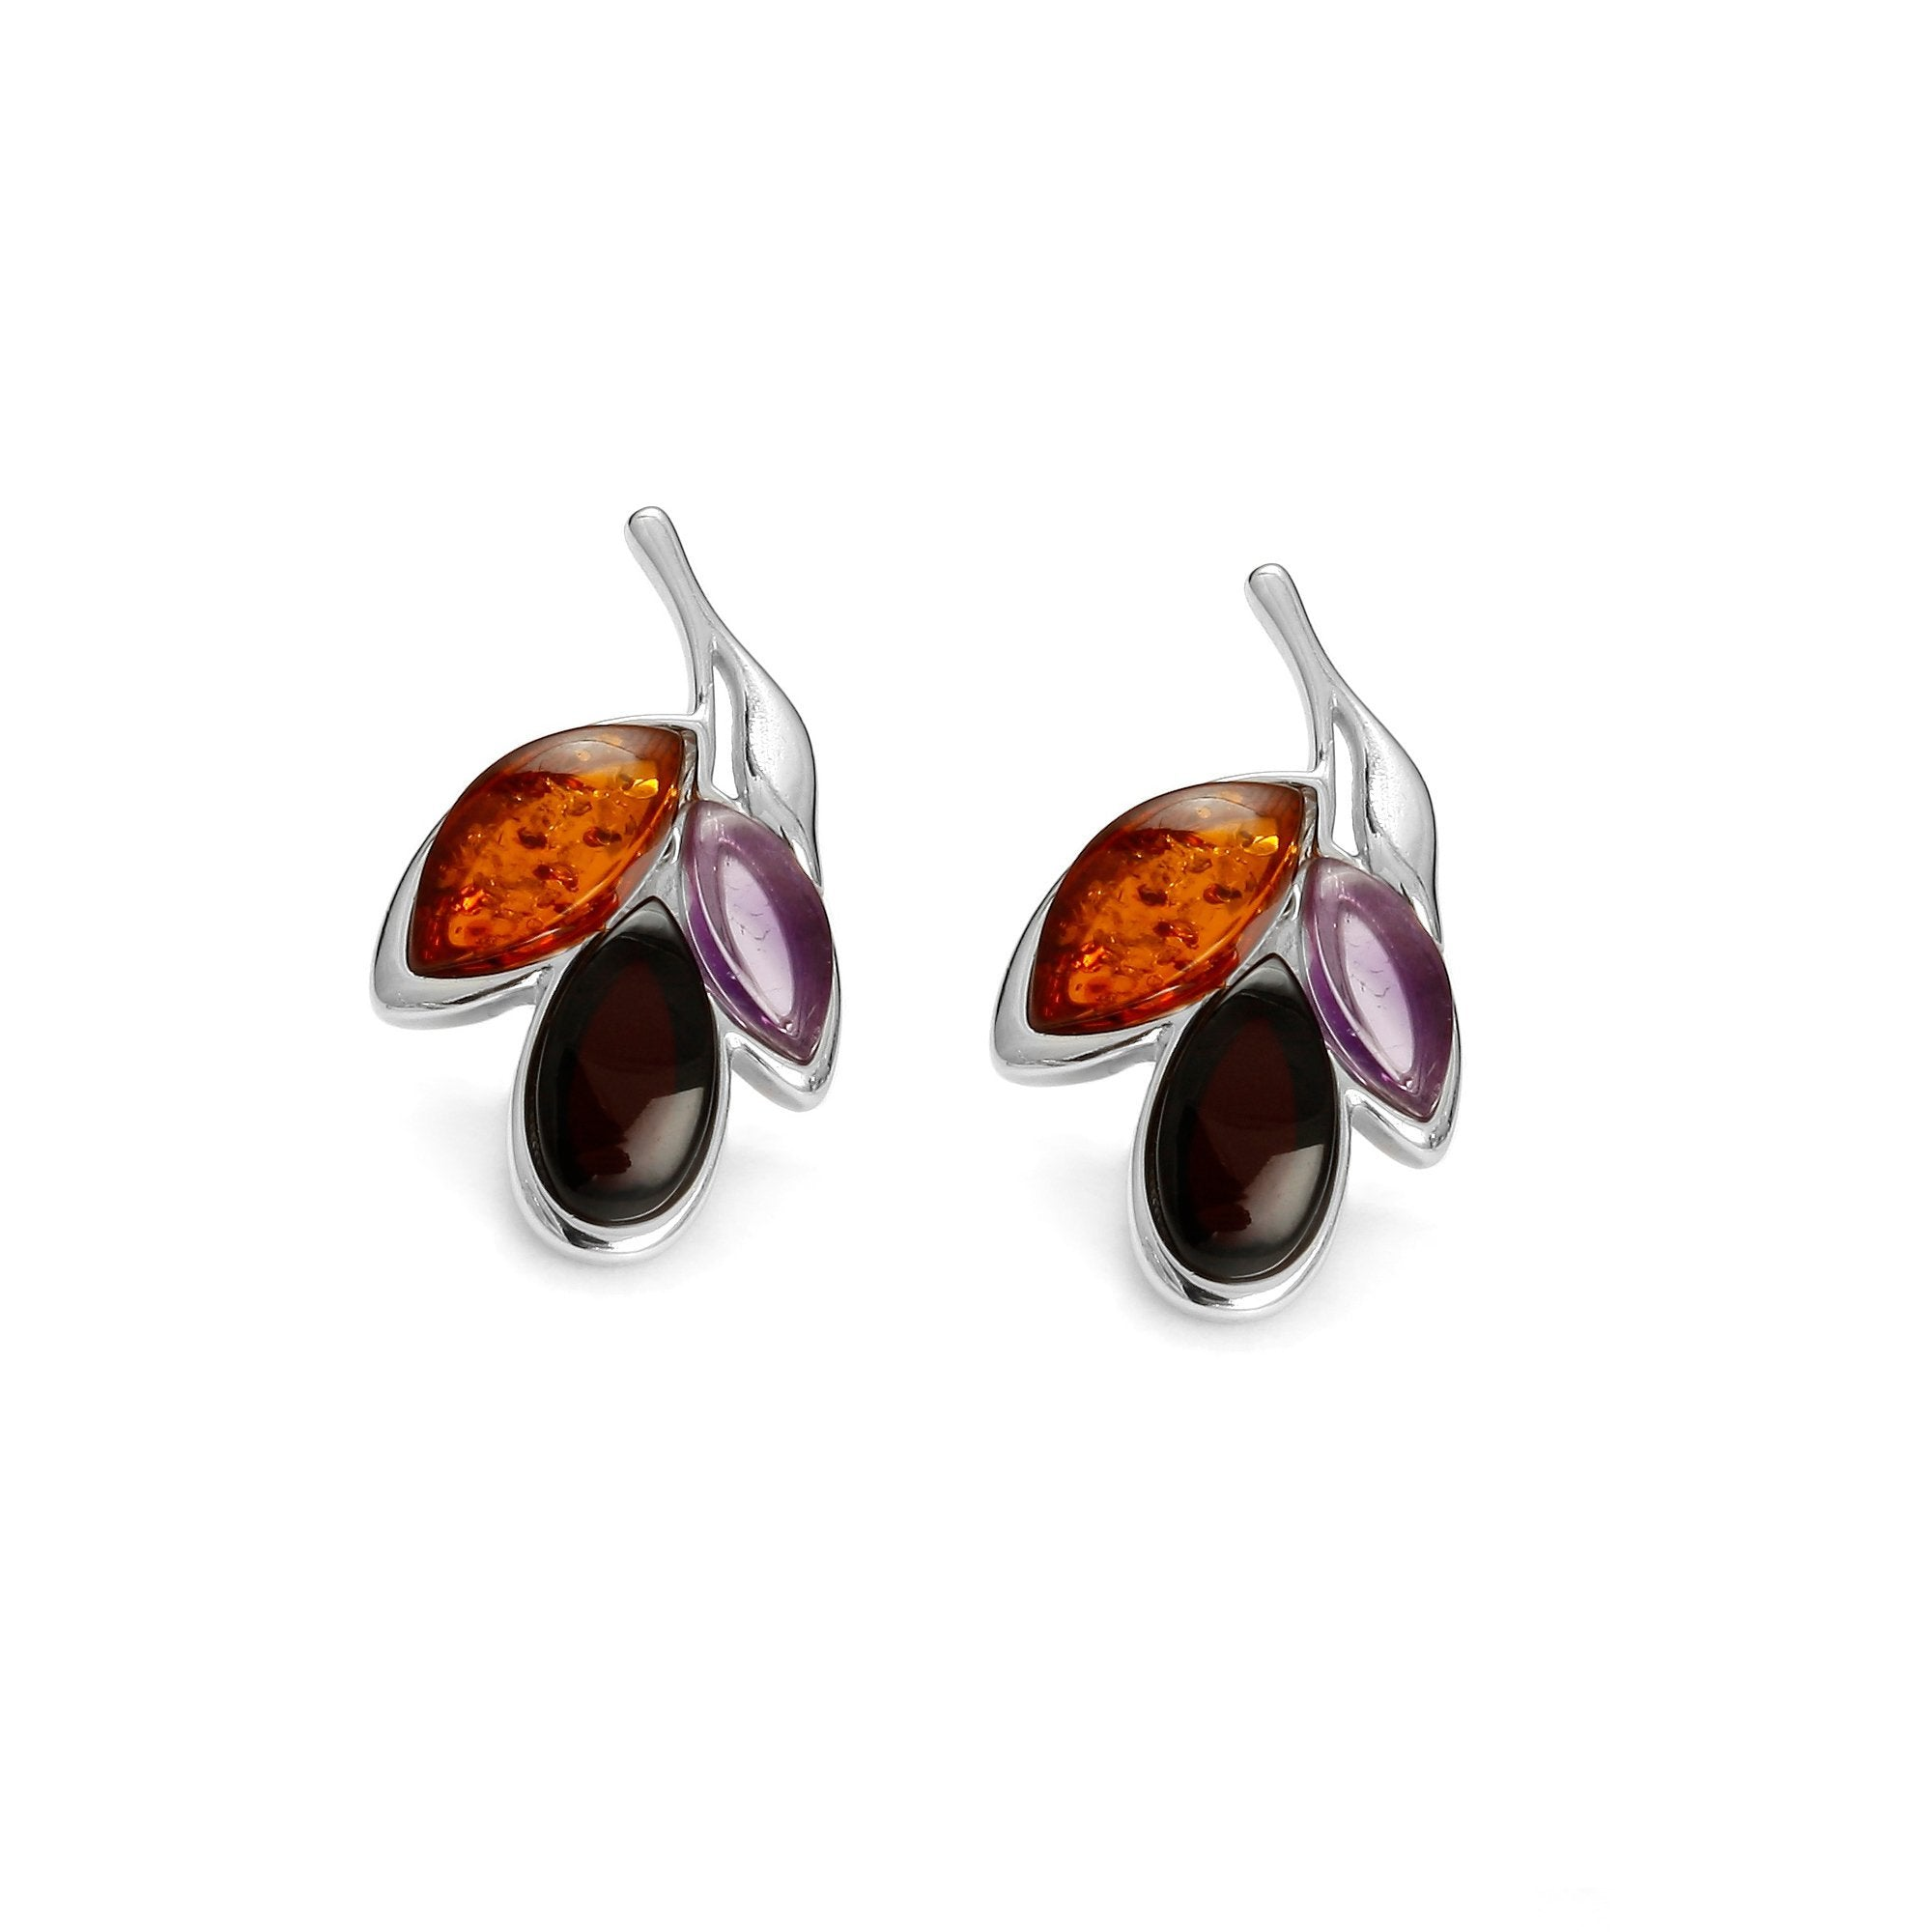 Autumn Leaves Earrings - Koraba